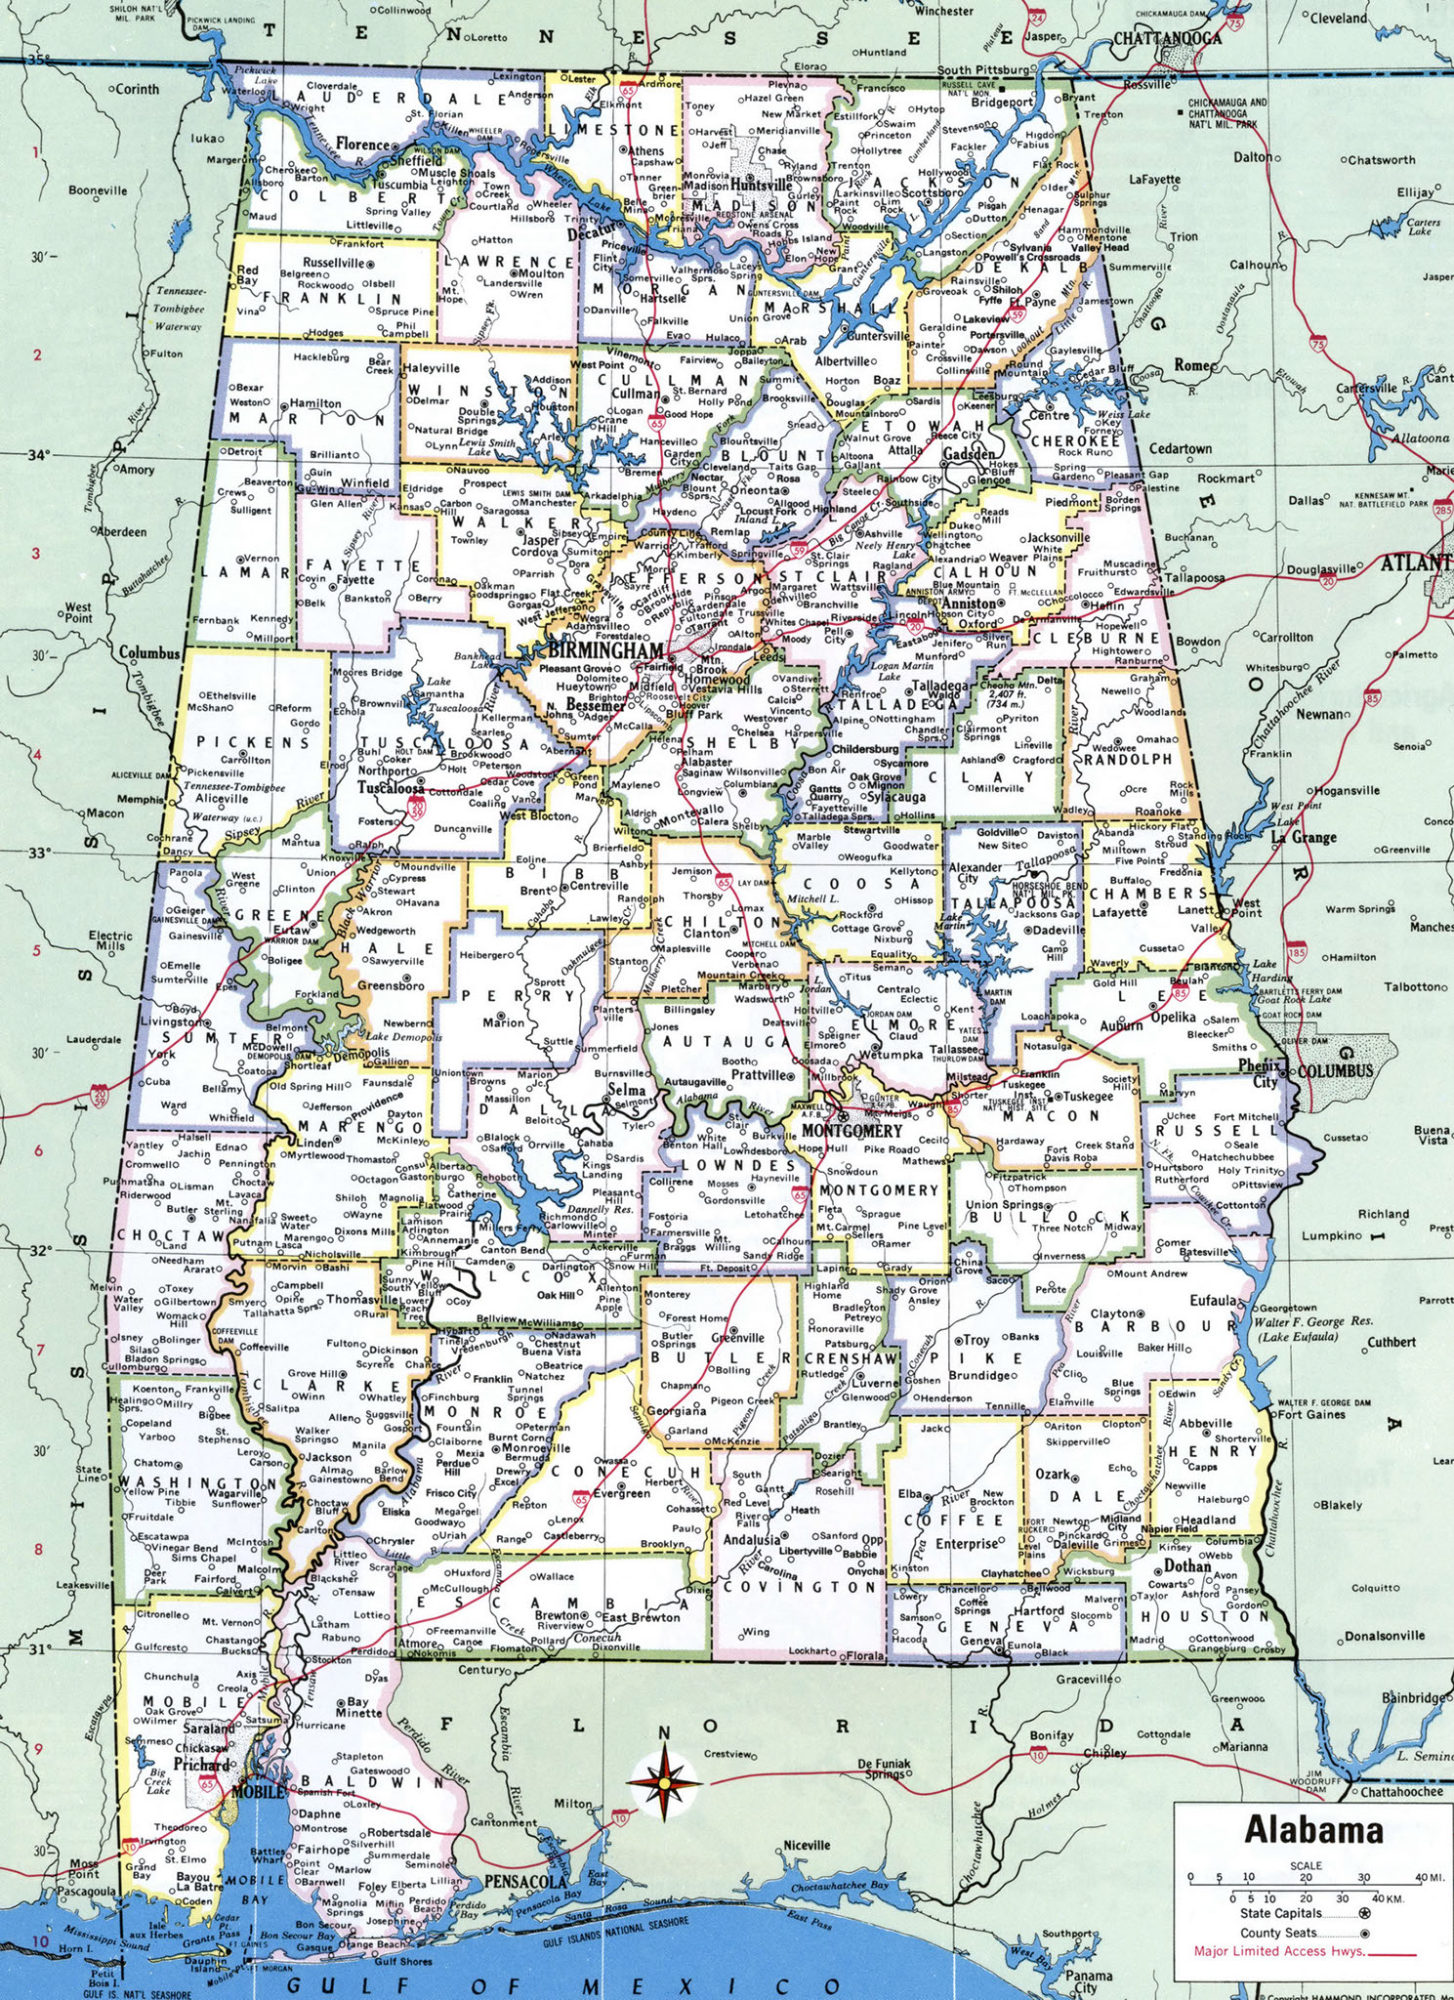 Alabama Large Political  Map   Political  Map of Alabama With Capital , city and River lake-6